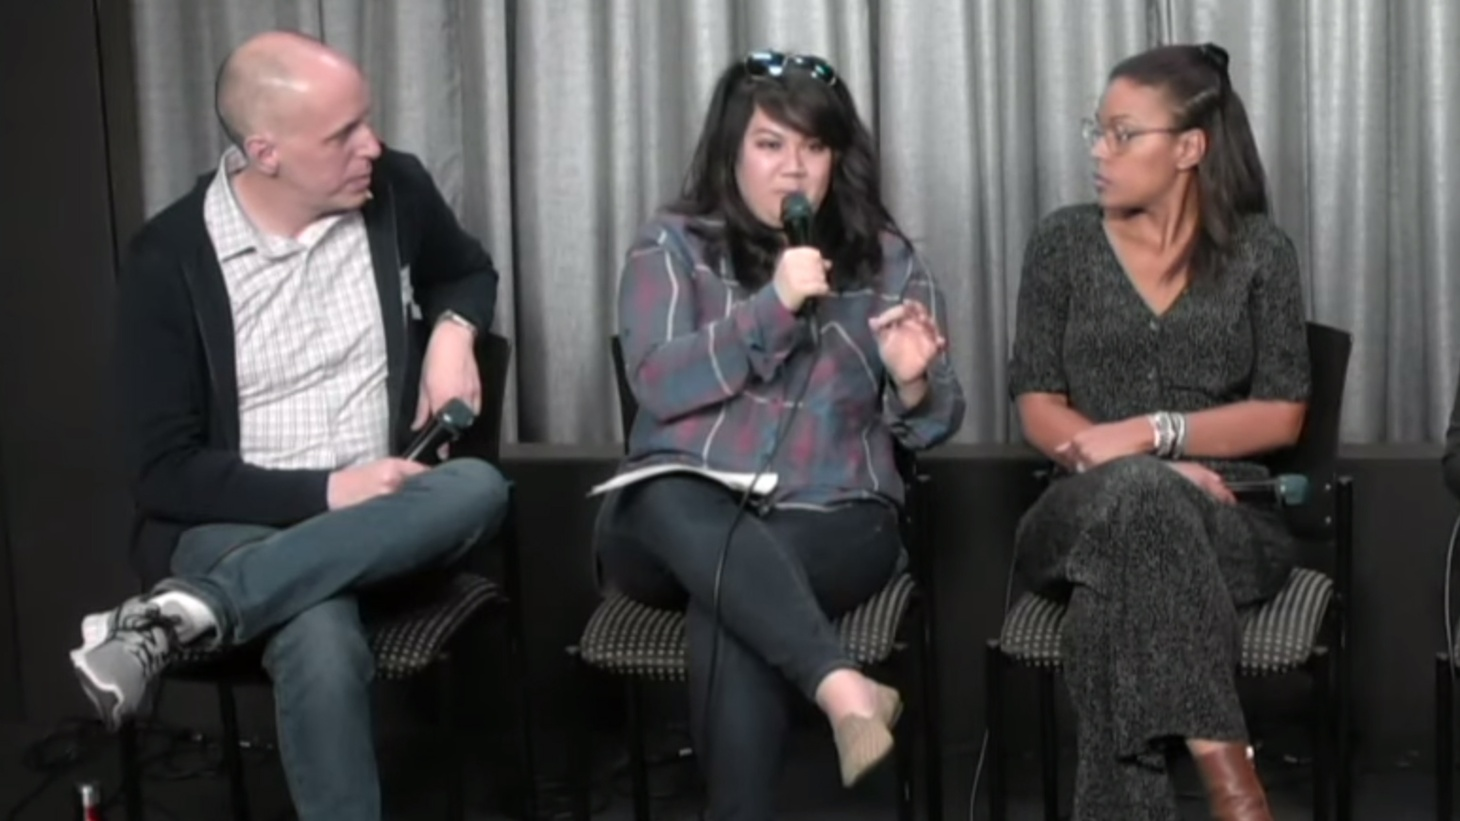 Writer and creator of #PayUpHollywood, Liz Alper, center, speaking at a recent town hall for Hollywood assistants.